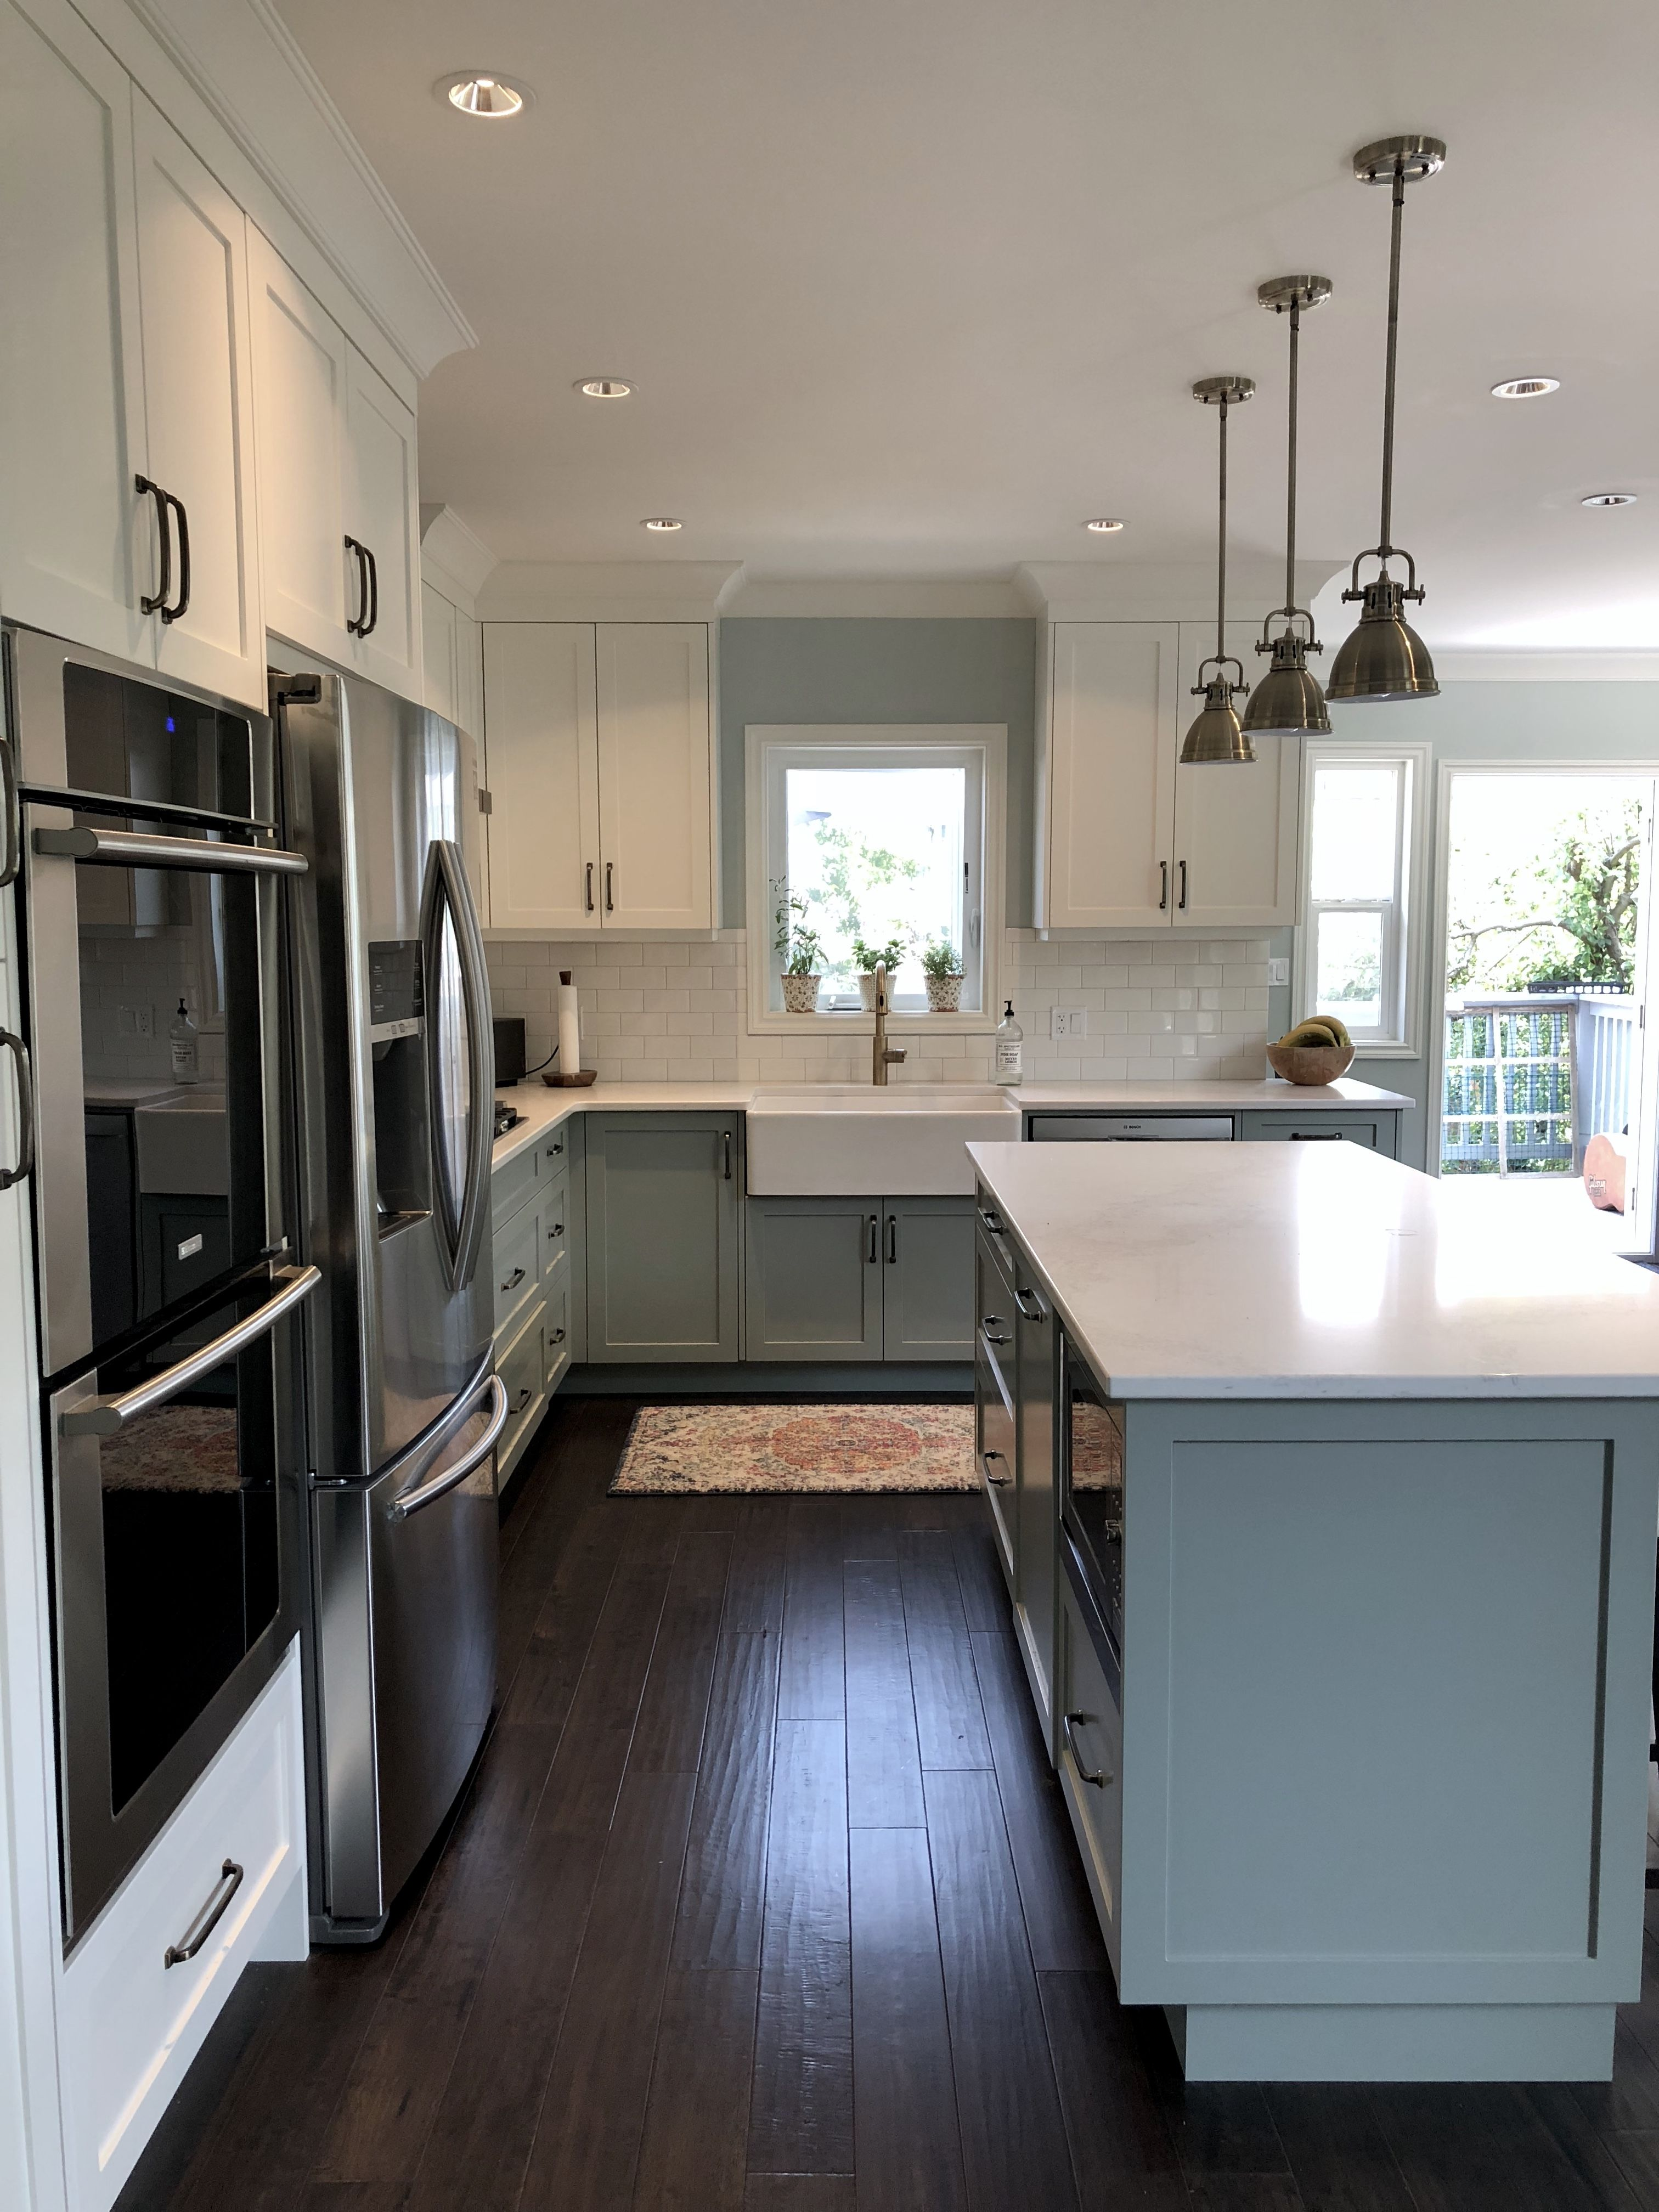 Modern Country Kitchen With Blue Grey And White Two Tone Cabinets Antique Br Kitchen Cabinets Grey And White Gray And White Kitchen Two Tone Kitchen Cabinets